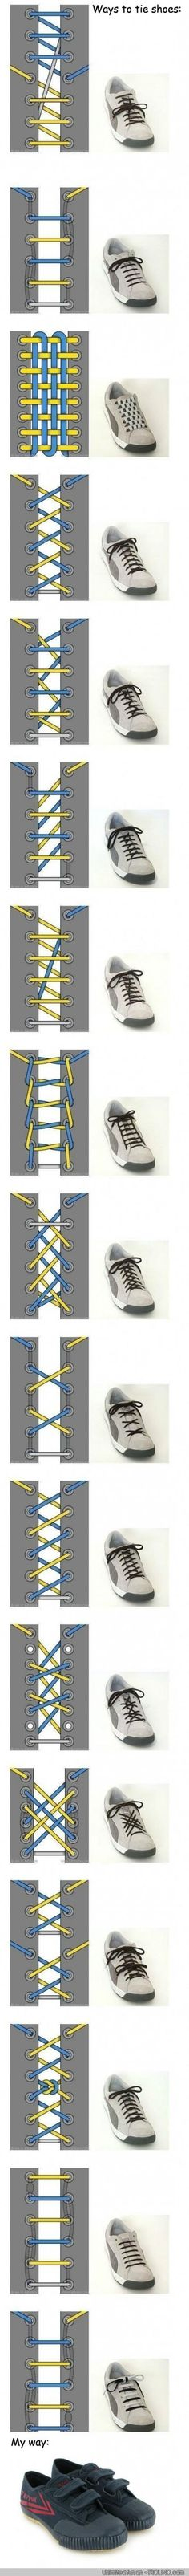 How to tie shoe laces different ways